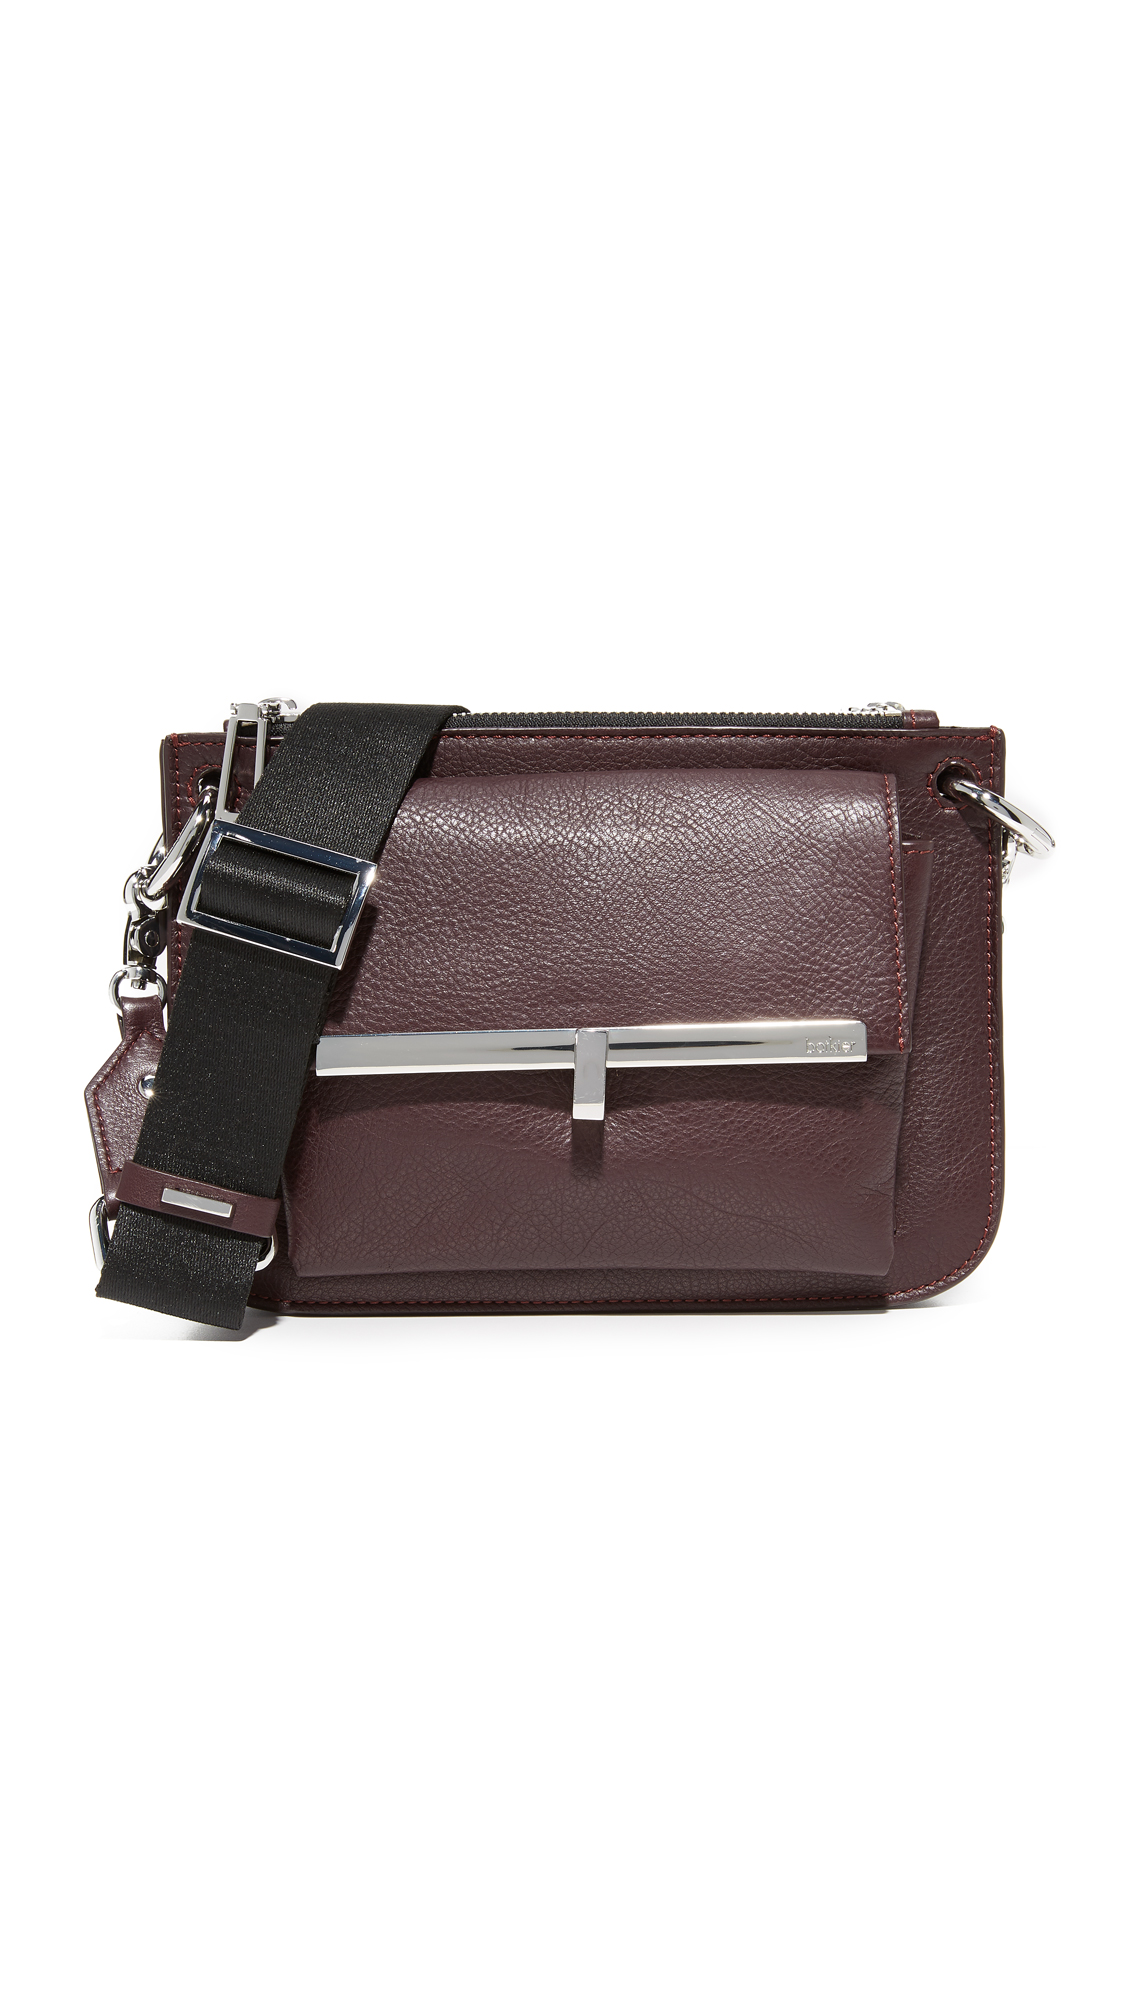 Botkier Bleeker Double Cross Body Bag - Wine